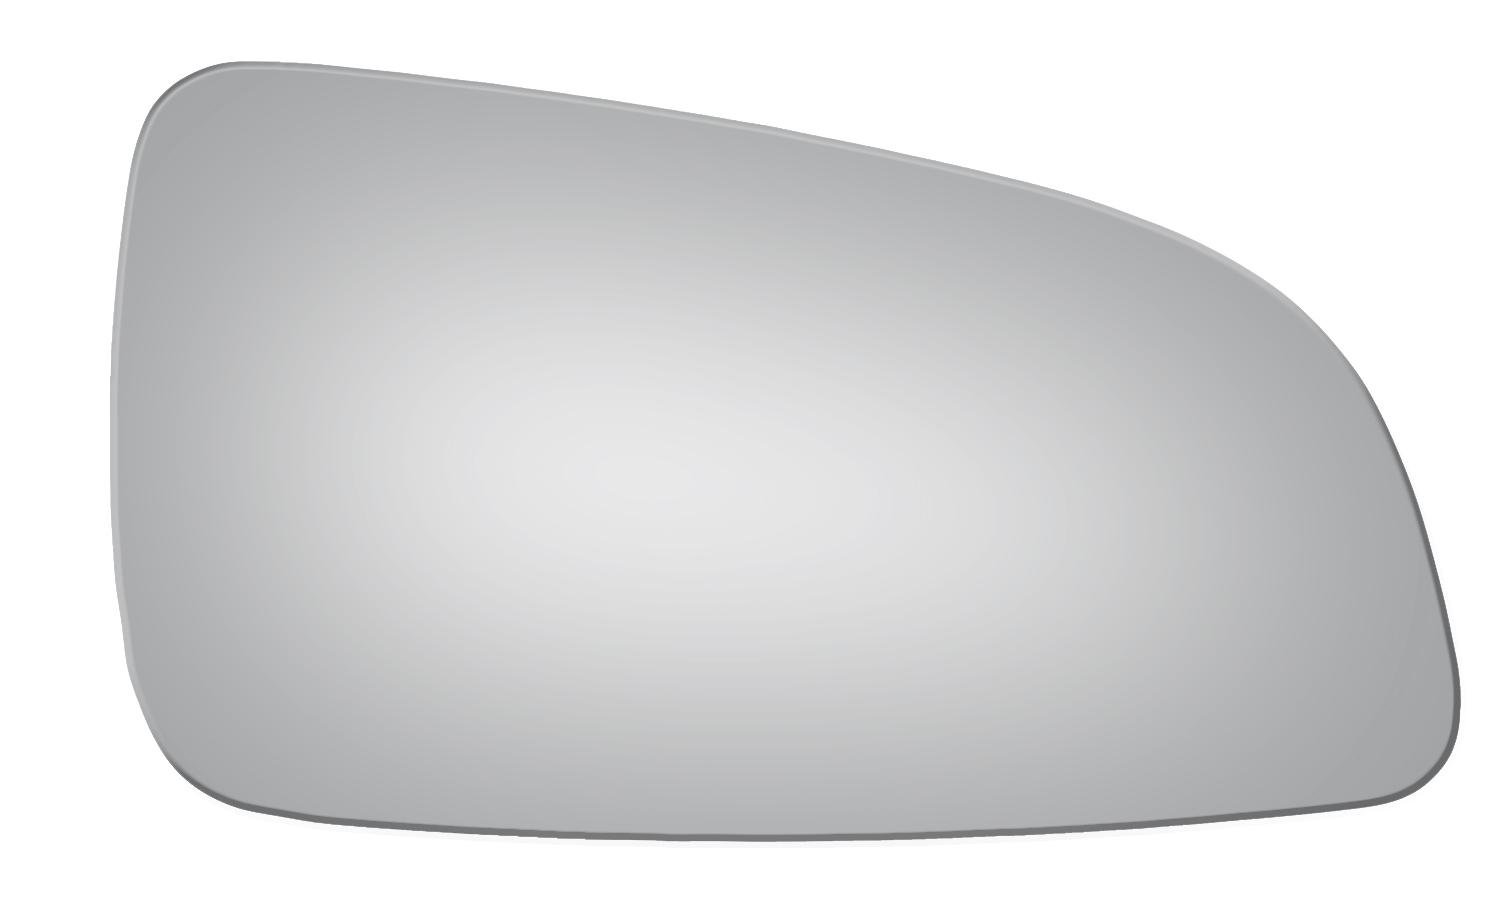 Burco Convex Passenger Side Replacement Mirror Glass for SATURN ASTRA 2008 2009